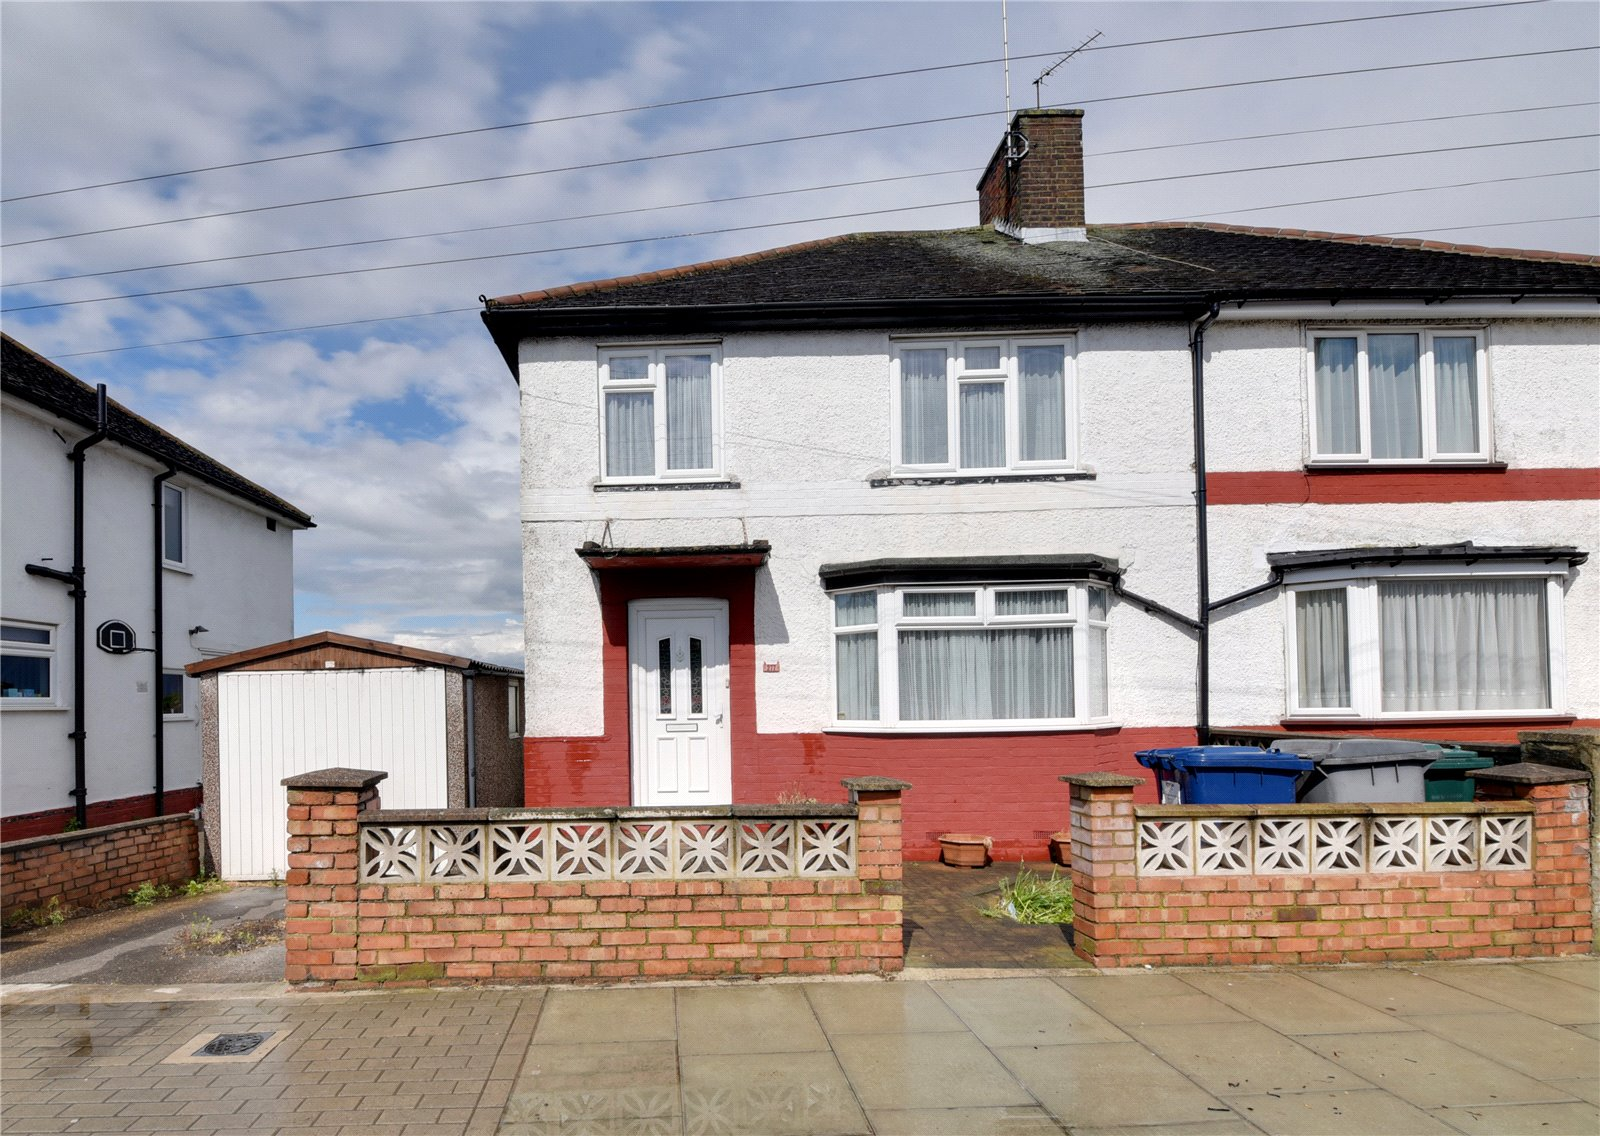 3 bed house for sale in Whetstone, N20 0DG  - Property Image 1